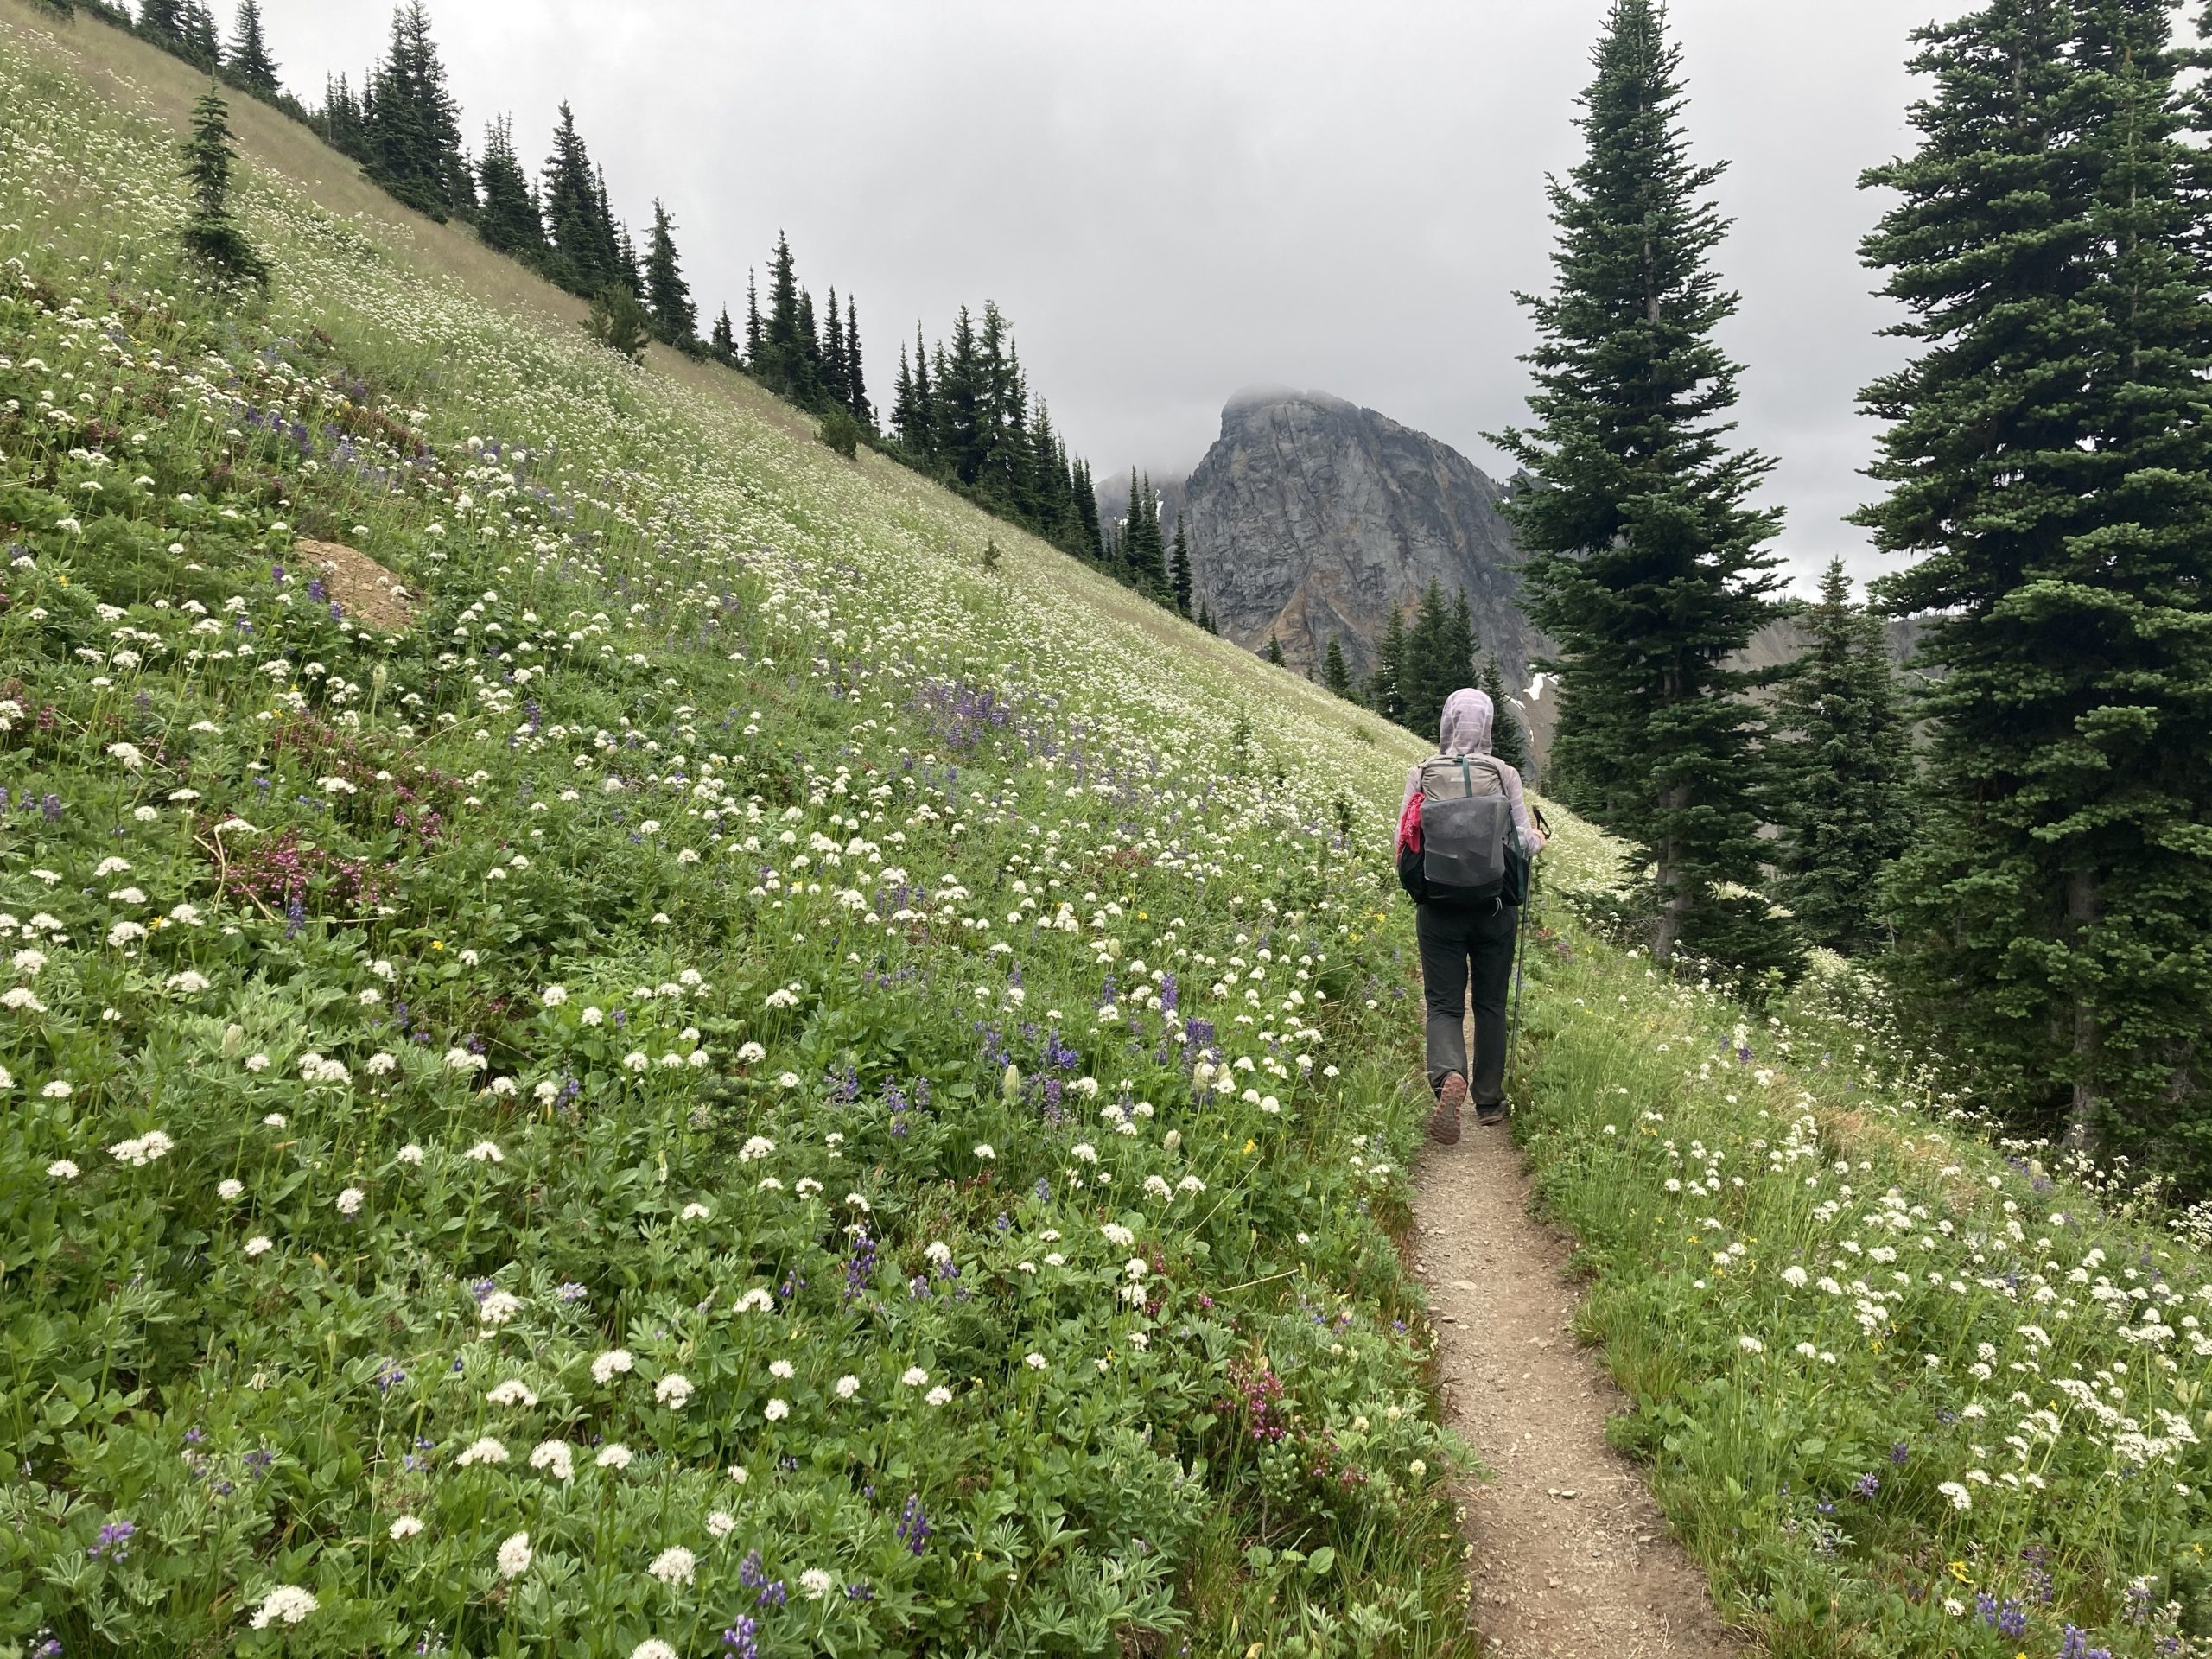 Hiking on Pacific Crest Trail with flowers in 2020